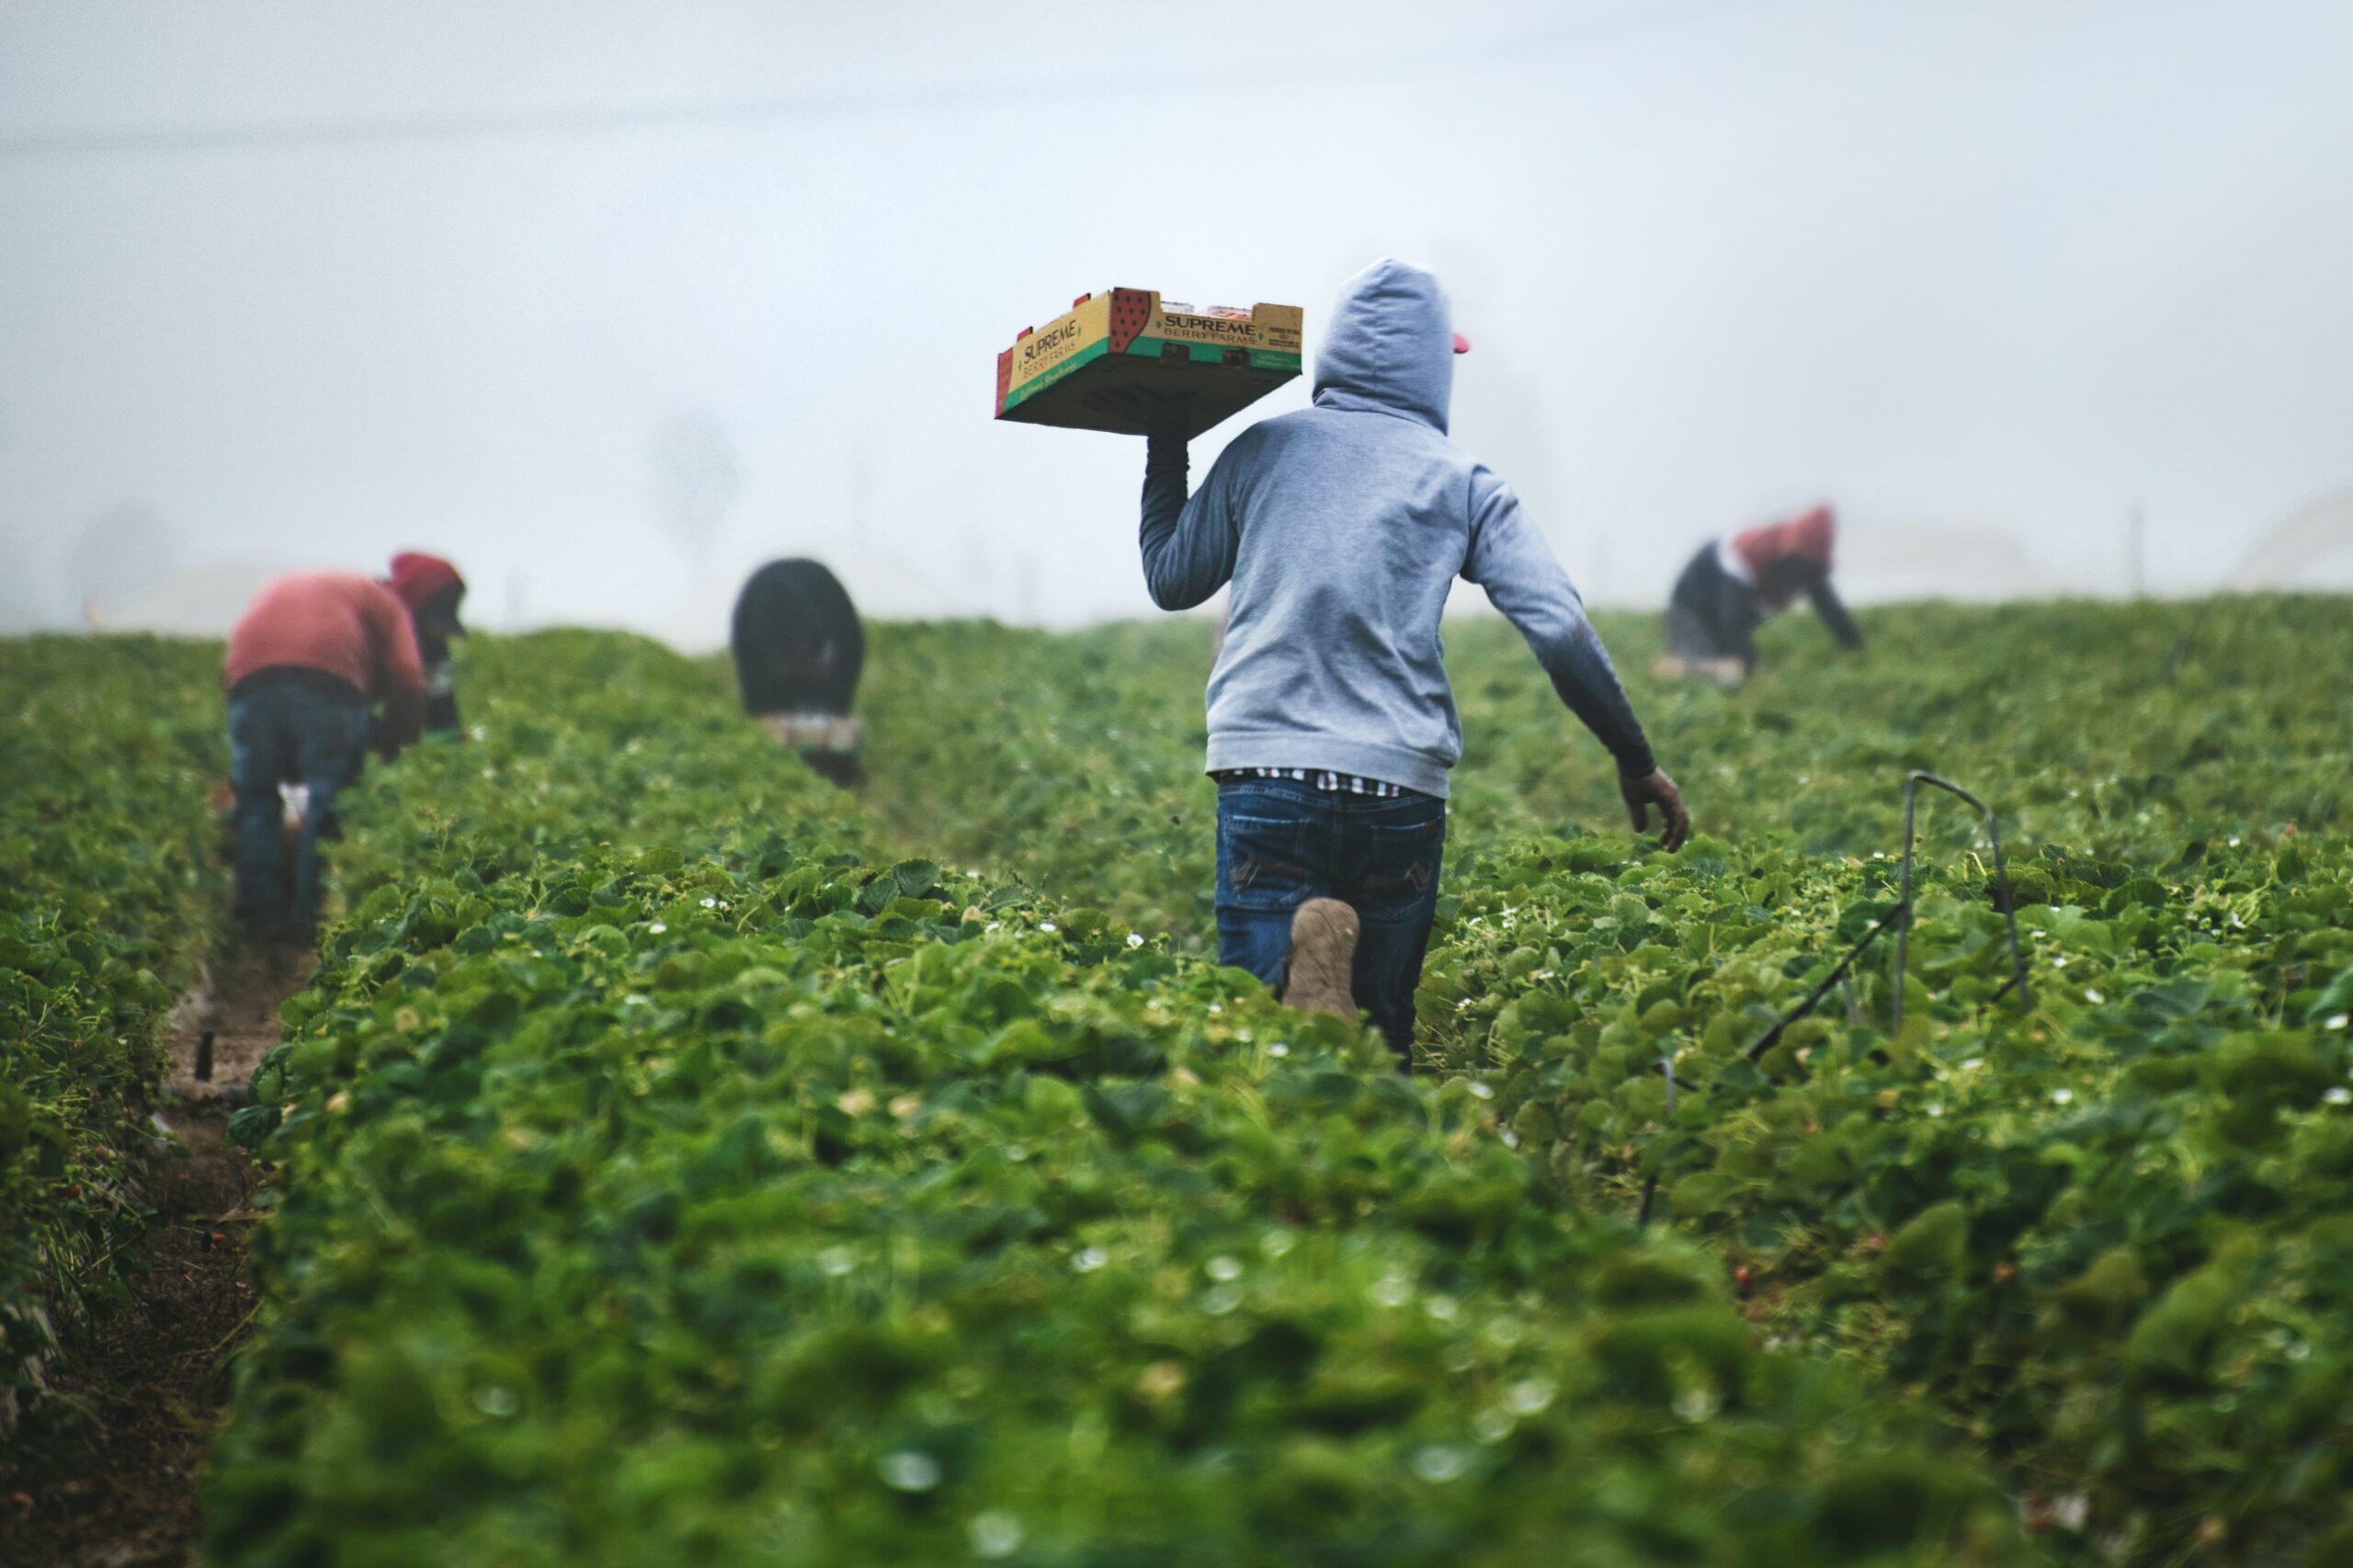 A worker in a field of short green bushes wearing a grey hoodie carries a box toward other workers in the background